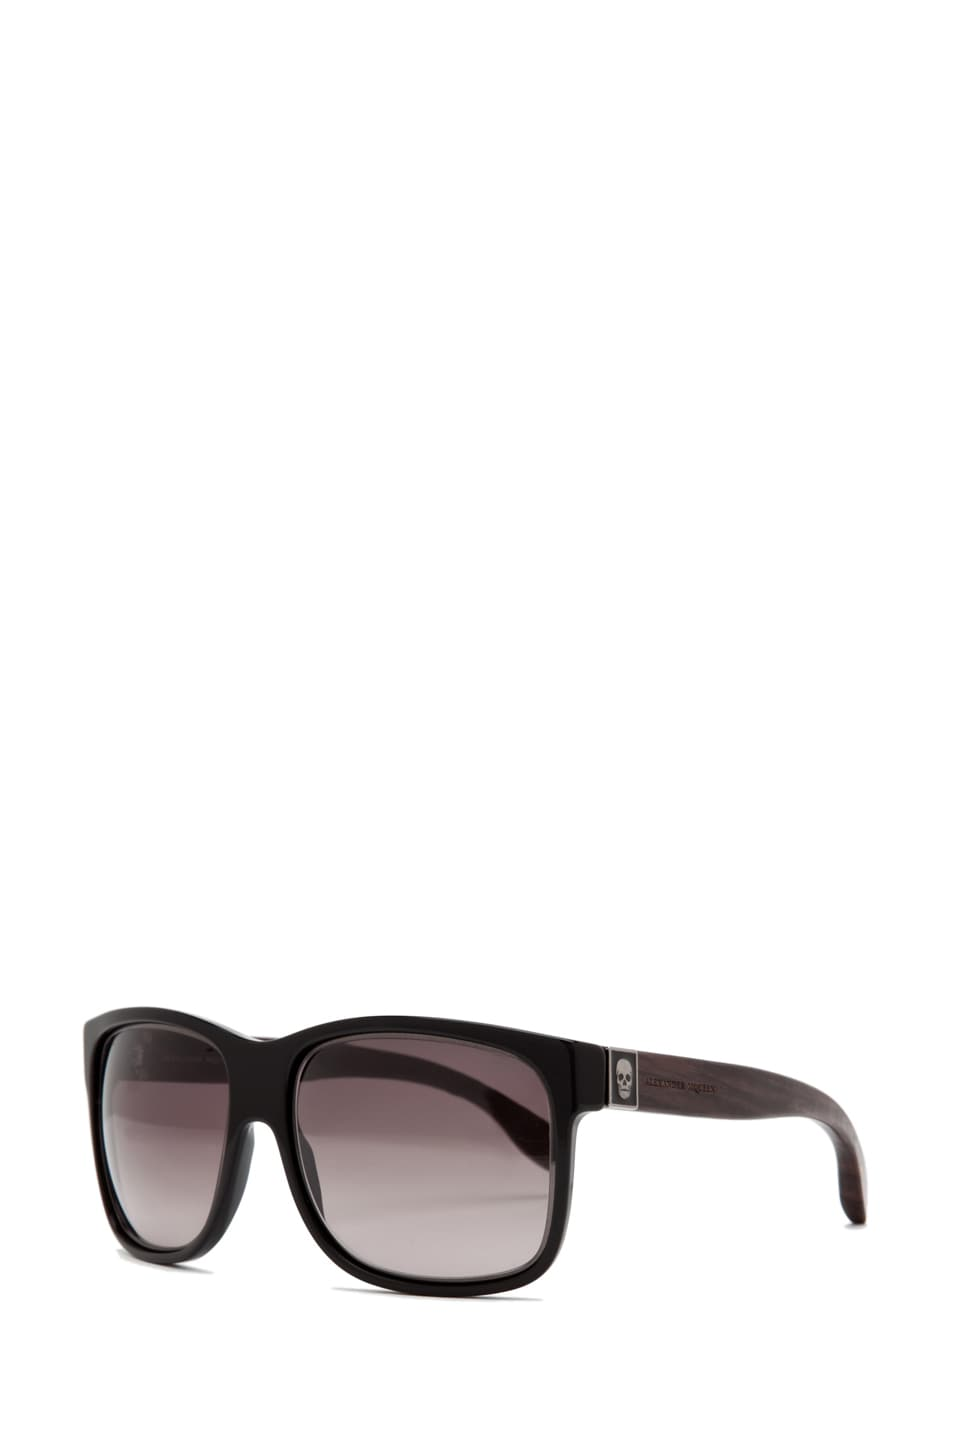 Image 2 of Alexander McQueen 4187 Sunglasses in Black